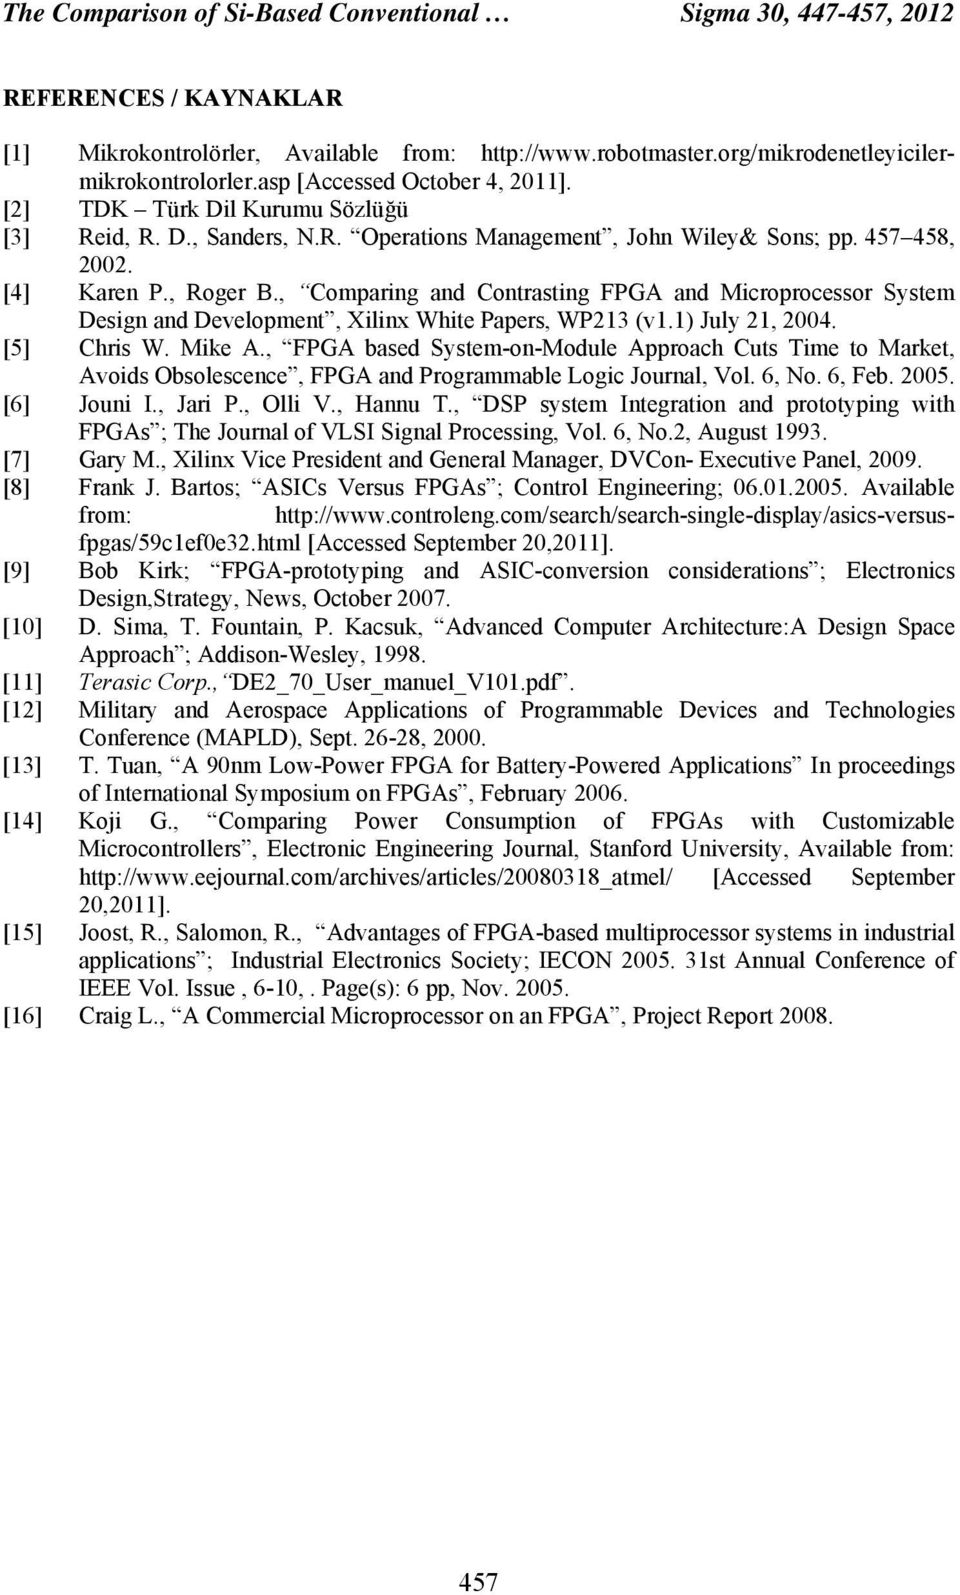 , Comparing and Contrasting FPGA and Microprocessor System Design and Development, Xilinx White Papers, WP213 (v1.1) July 21, 2004. [5] Chris W. Mike A.